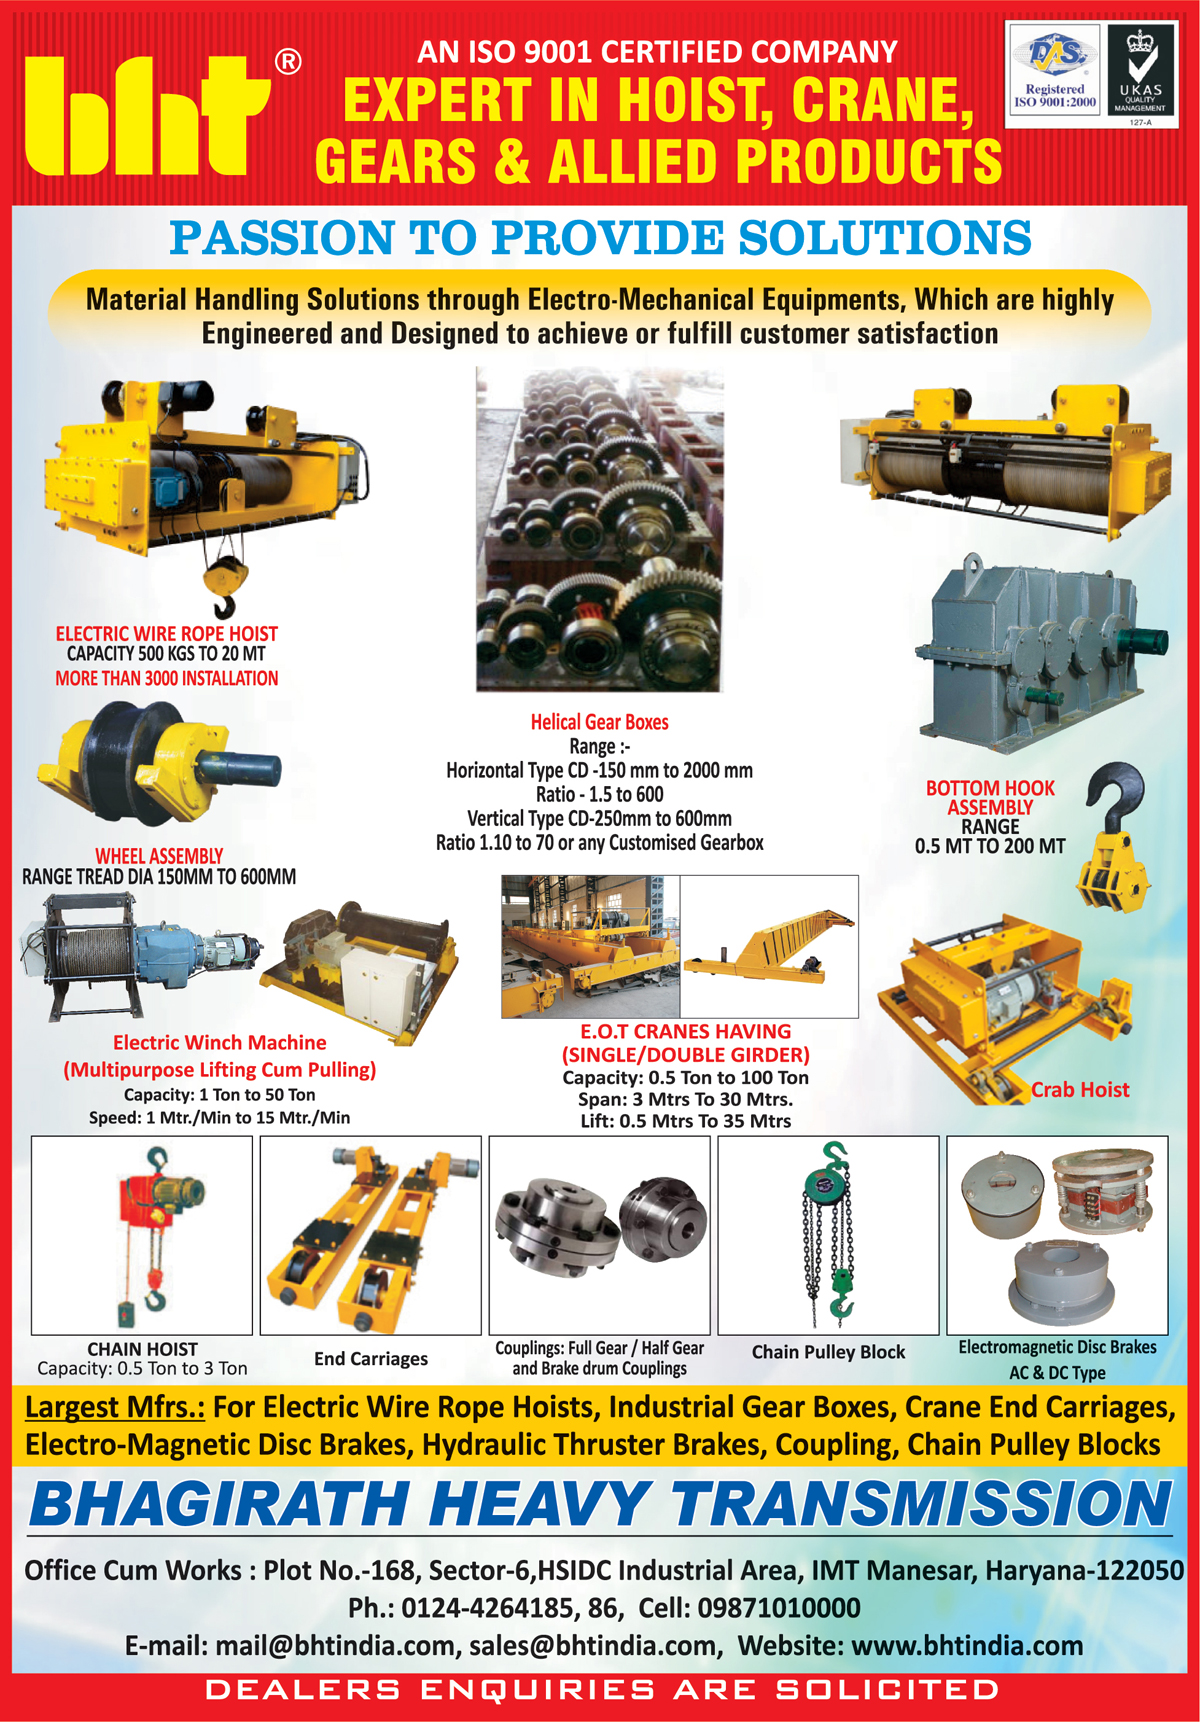 Electric Wire Rope Hoist, Helical Gear Boxes, Crane End Carriages, Electro Magnetic Disc Brakes, Hydraulic Thruster Brakes, Chain Pulley Blocks, Full Gear Brake Drum Couplings, Half Gear Brake Drum Couplings, Single Girder EOT Cranes, Double Girder EOT Cranes, Chain Host, Bottom Hook Assemblies, Crab Hoist, Jib Cranes, Electric Winch Machines, Multipurpose Lifting Machines, Multipurpose Pulling Machines, Multipurpose Lifting Cum Pulling Machines, End Carriages, AC Type Electromagnetic Disc Brakes, DC Type Electromagnetic Disc Brakes, Electro Mechanical Equipments, EOT Cranes, HOT Cranes, Gantry Cranes, Brake Motors, Geared Motors, Manual Winch Machines, Chain Pulley Trolley,Gear Boxes, Industrial Gear Boxes, Industrial Hoist, Hoist